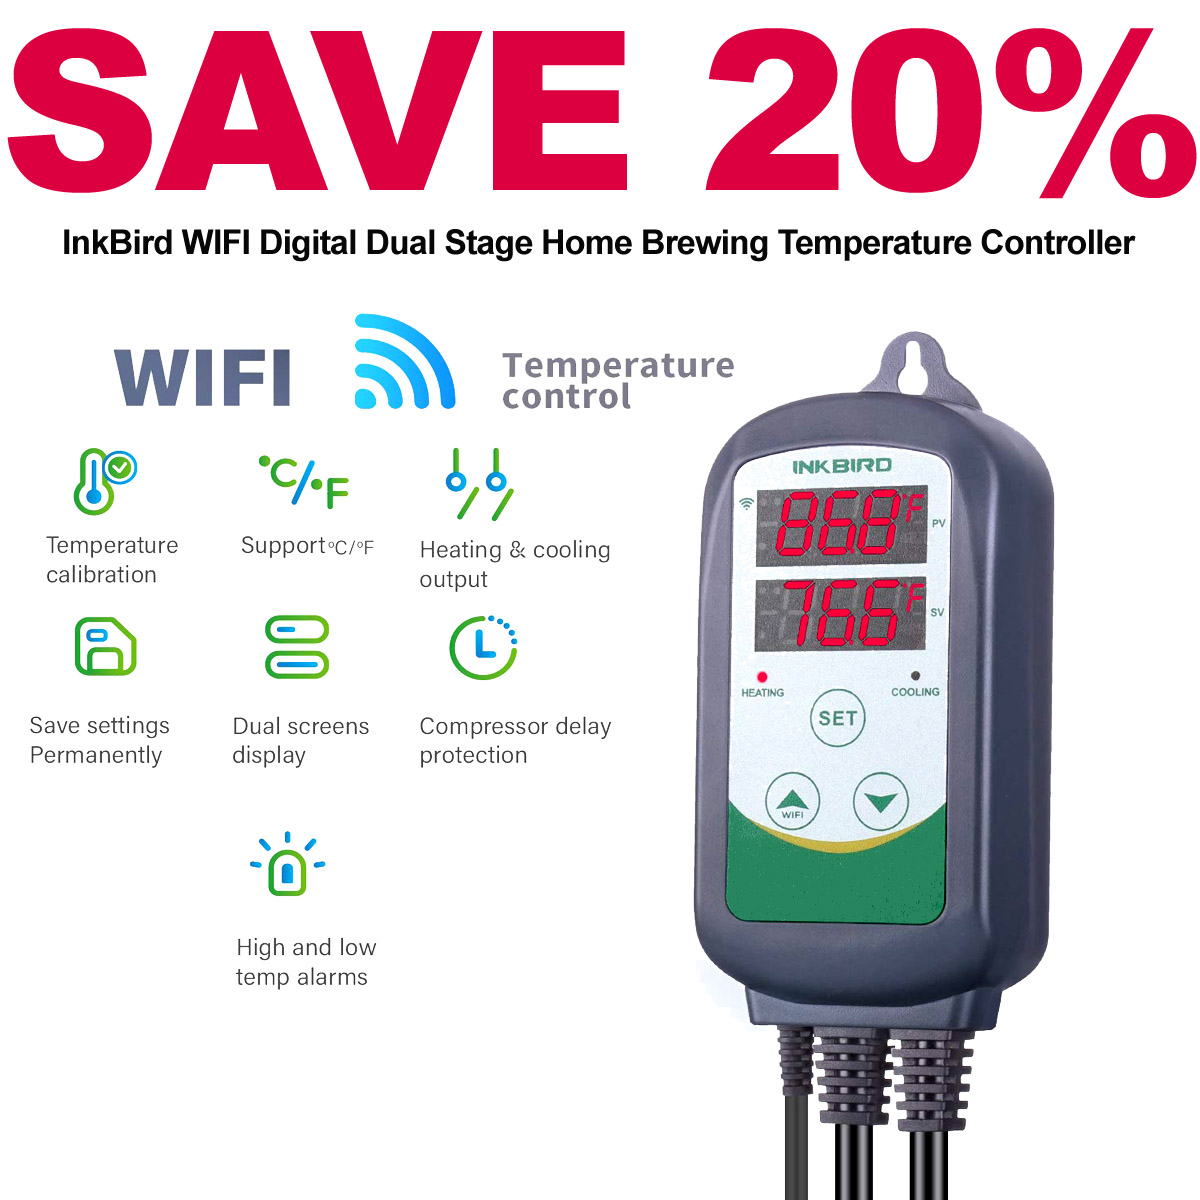 Home Brewing Promo Code Save 20% On An Inkbird Dual Stage Temperature Controller with WIFI Connectivity with this INKBIRD Promo Code. Plus get FREE Shipping. Coupon Code